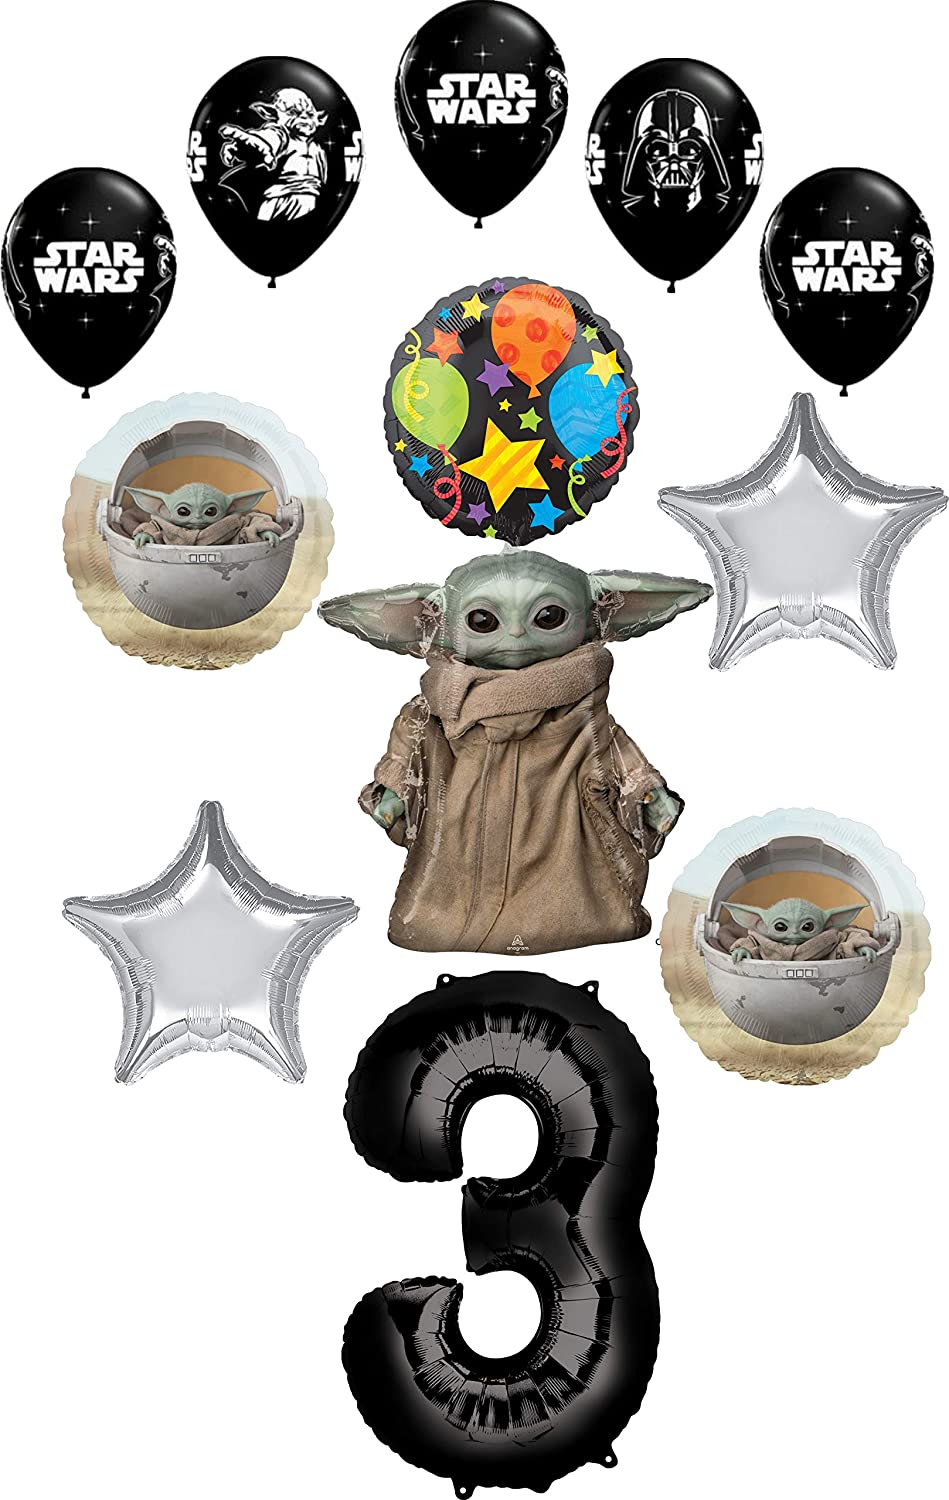 Star Wars Mandalorian the Child 3rd Birthday Party Supplies Baby Yoda Balloon Bouquet Decorations